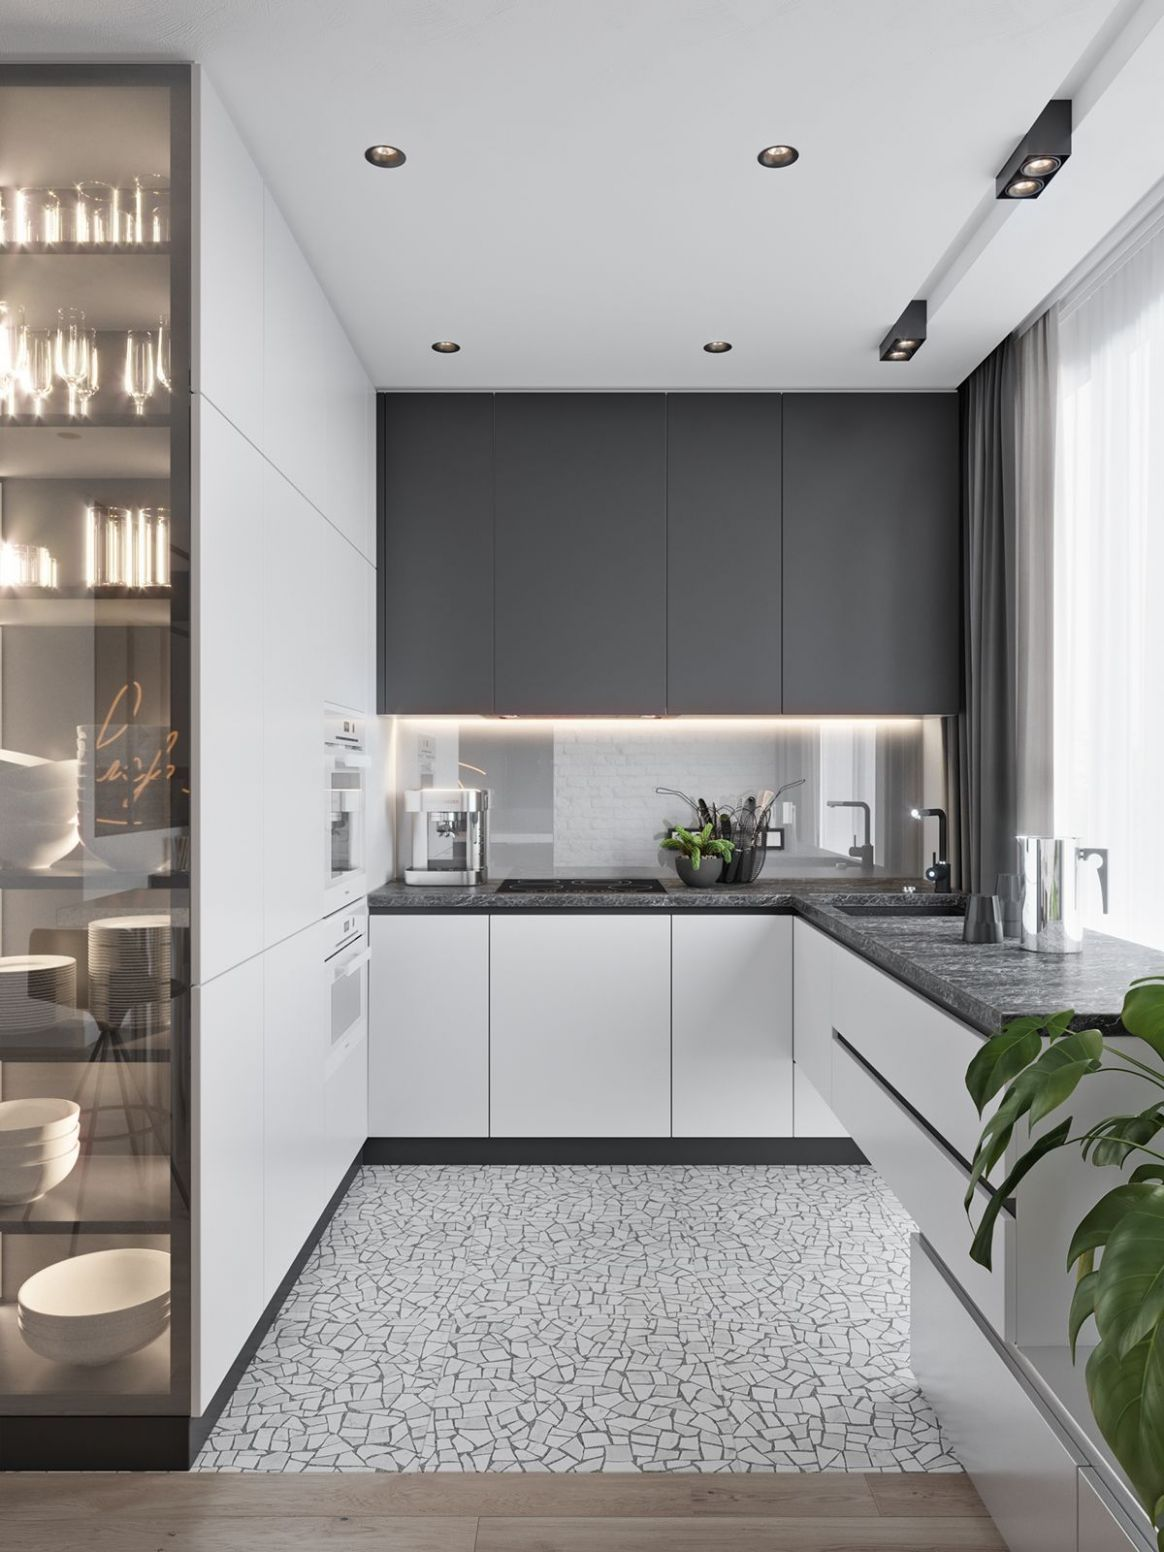 These minimalist kitchen ideas are equal components calm and ..